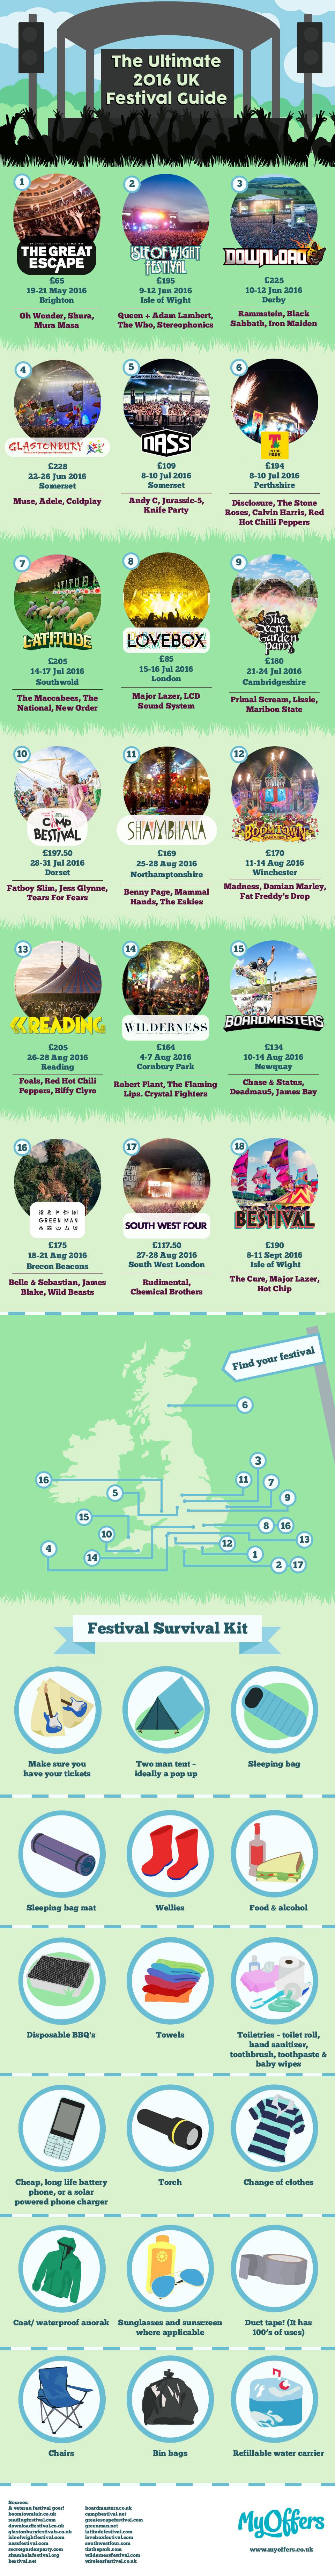 The Ultimate 2016 UK Festival Guide